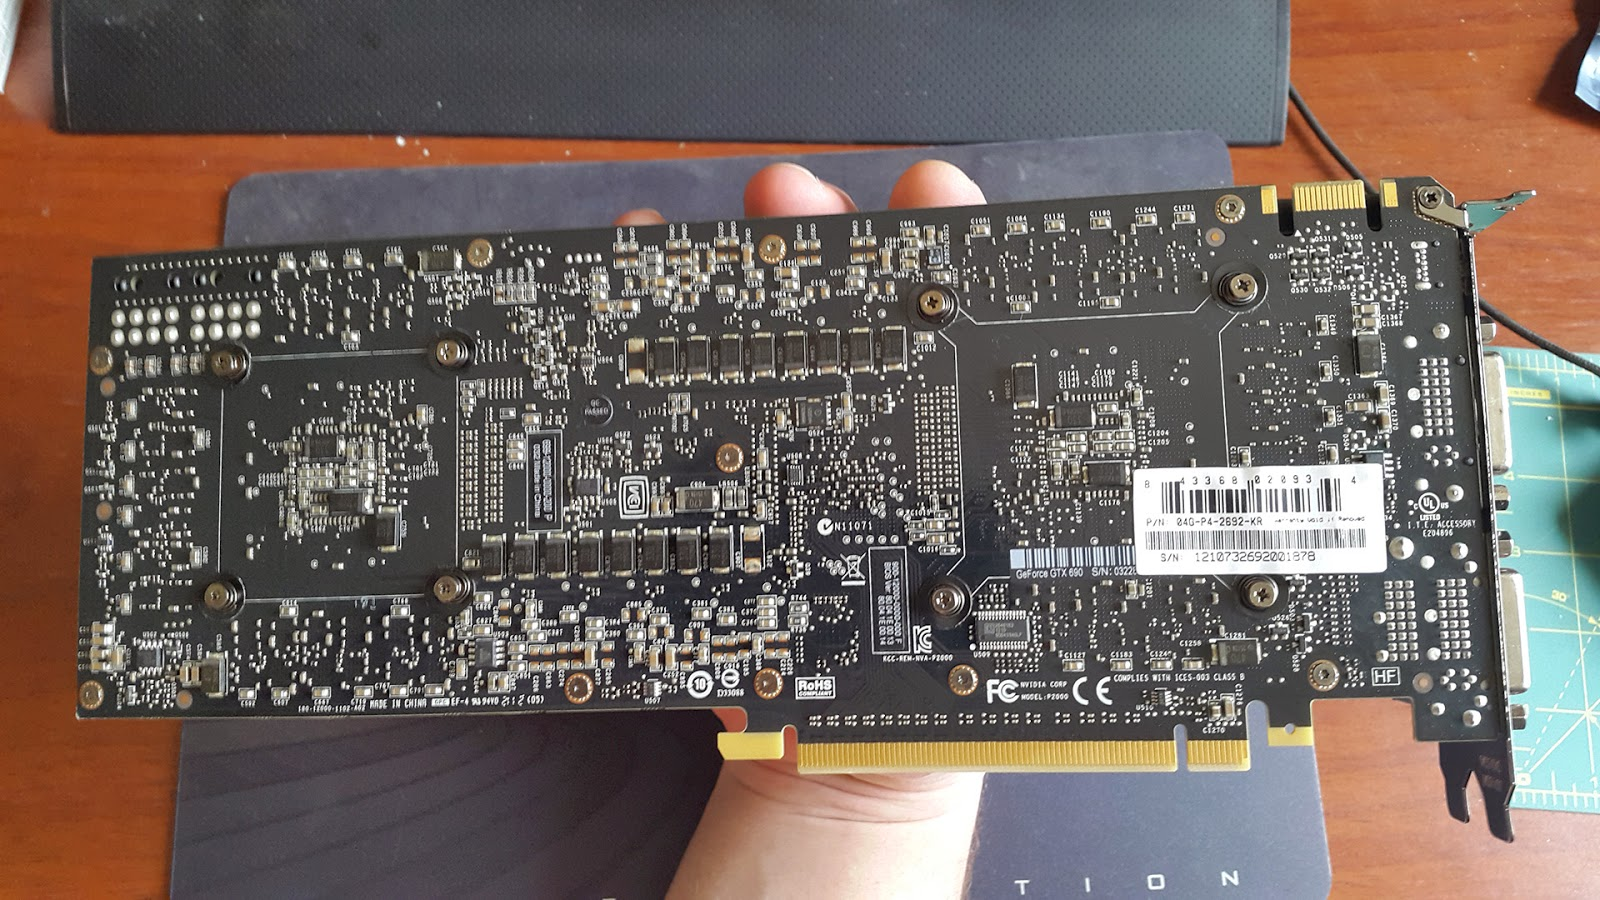 NVIDIA GeForce GTX 690 - Back